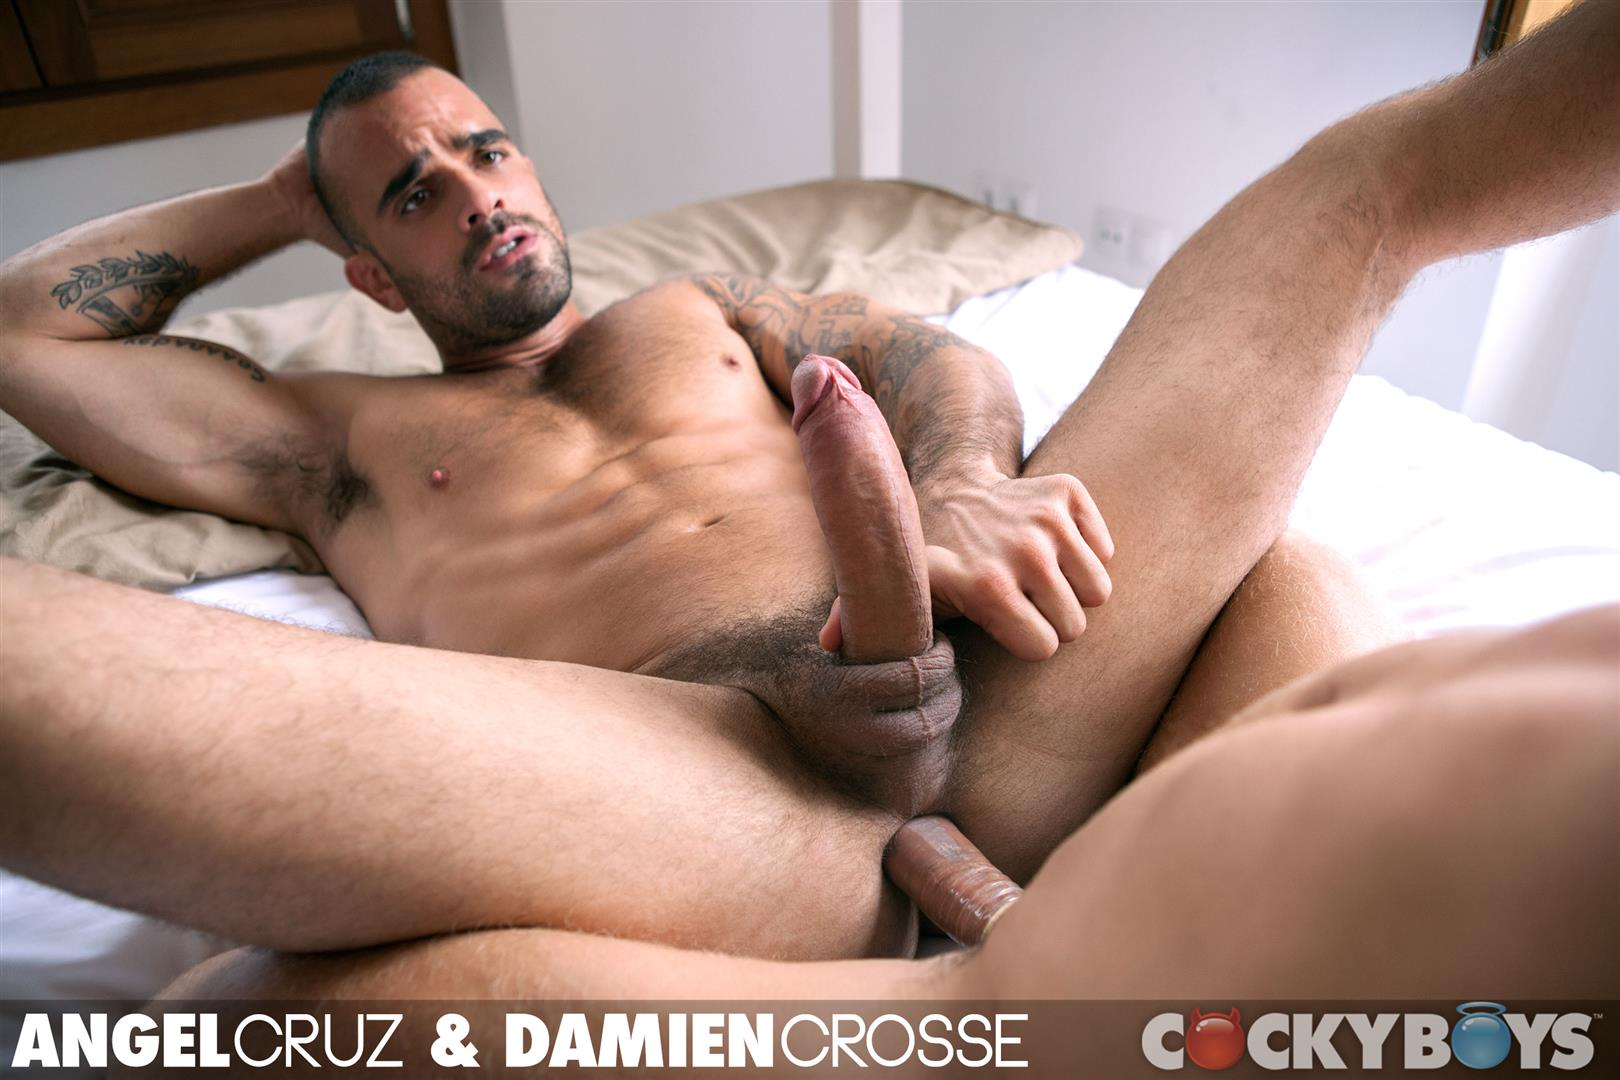 Cockyboys Angel Cruz and Damien Cross Big Uncut Cocks Fucking Amateur Gay Porn 33 Angel Cruz and Damien Cross Flip Fucking With Their Big Uncut Cocks